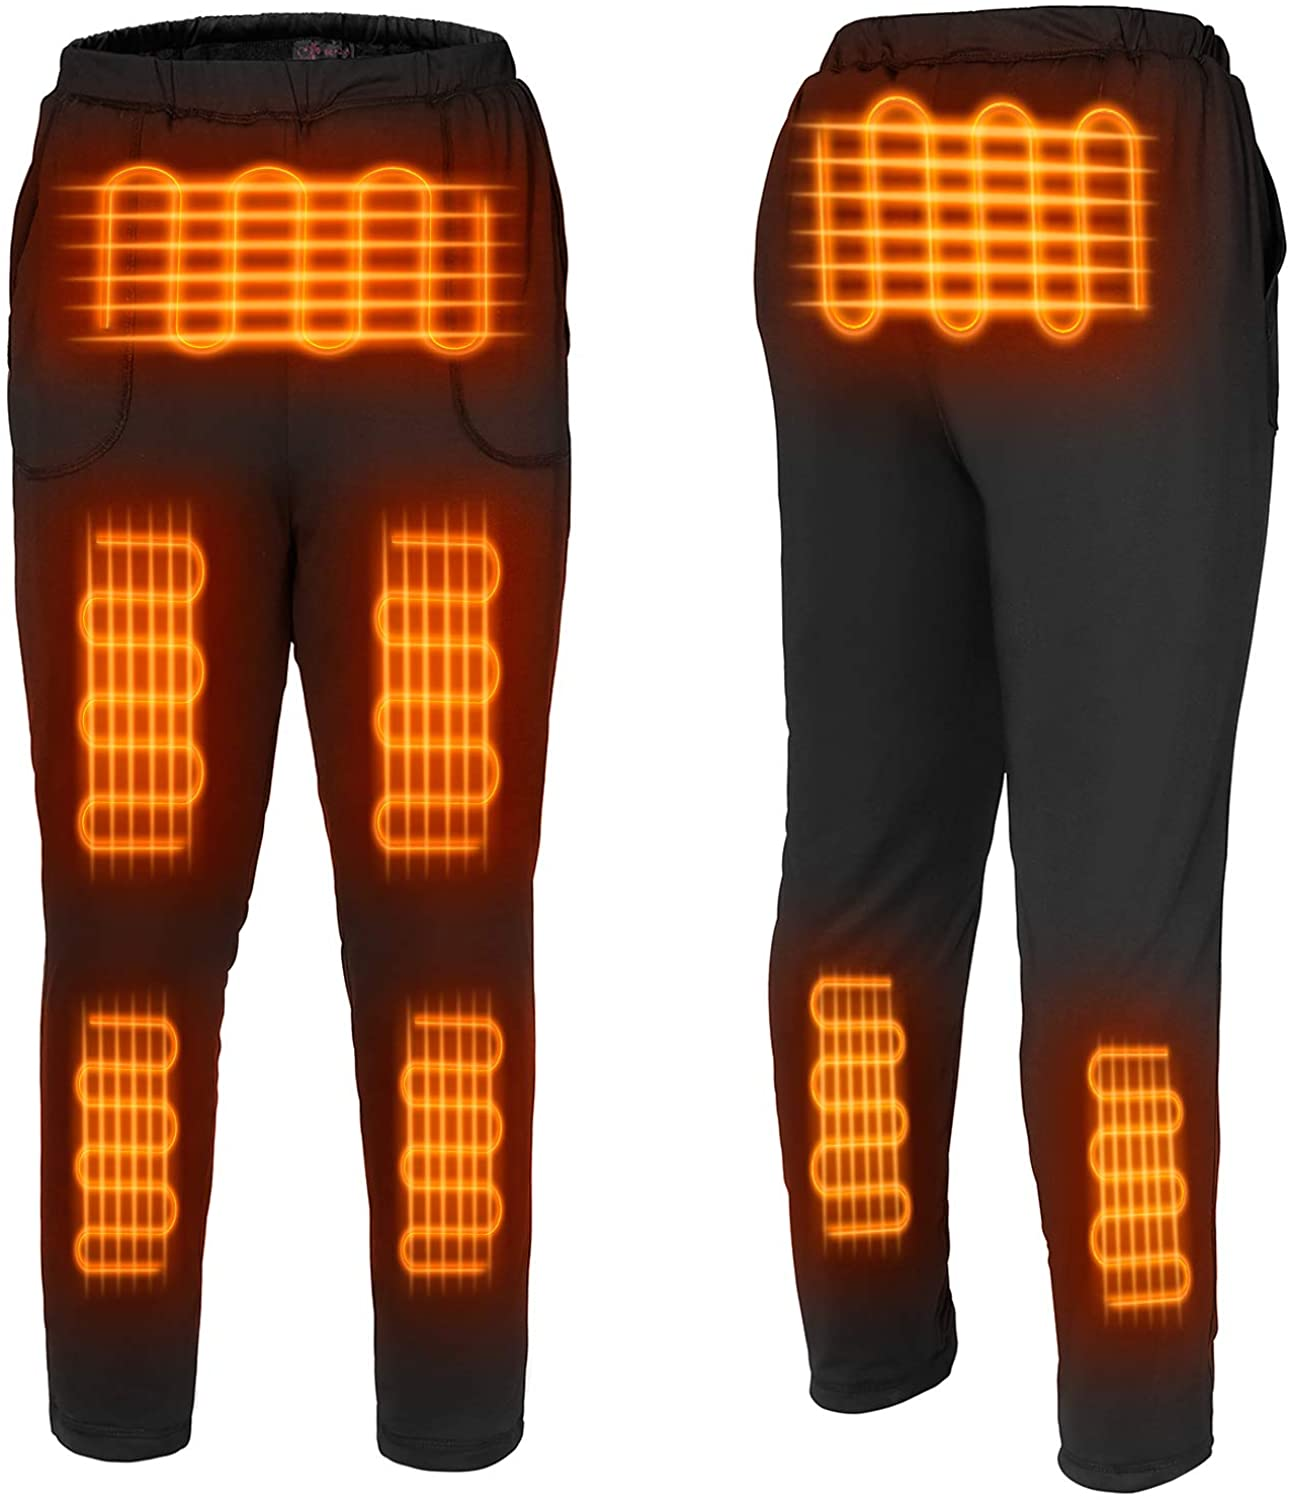 FERNIDA Heated Pants USB Electric Thermal Heating Trousers Cold-Proof Bottom Men/Women(Battery Not Included)